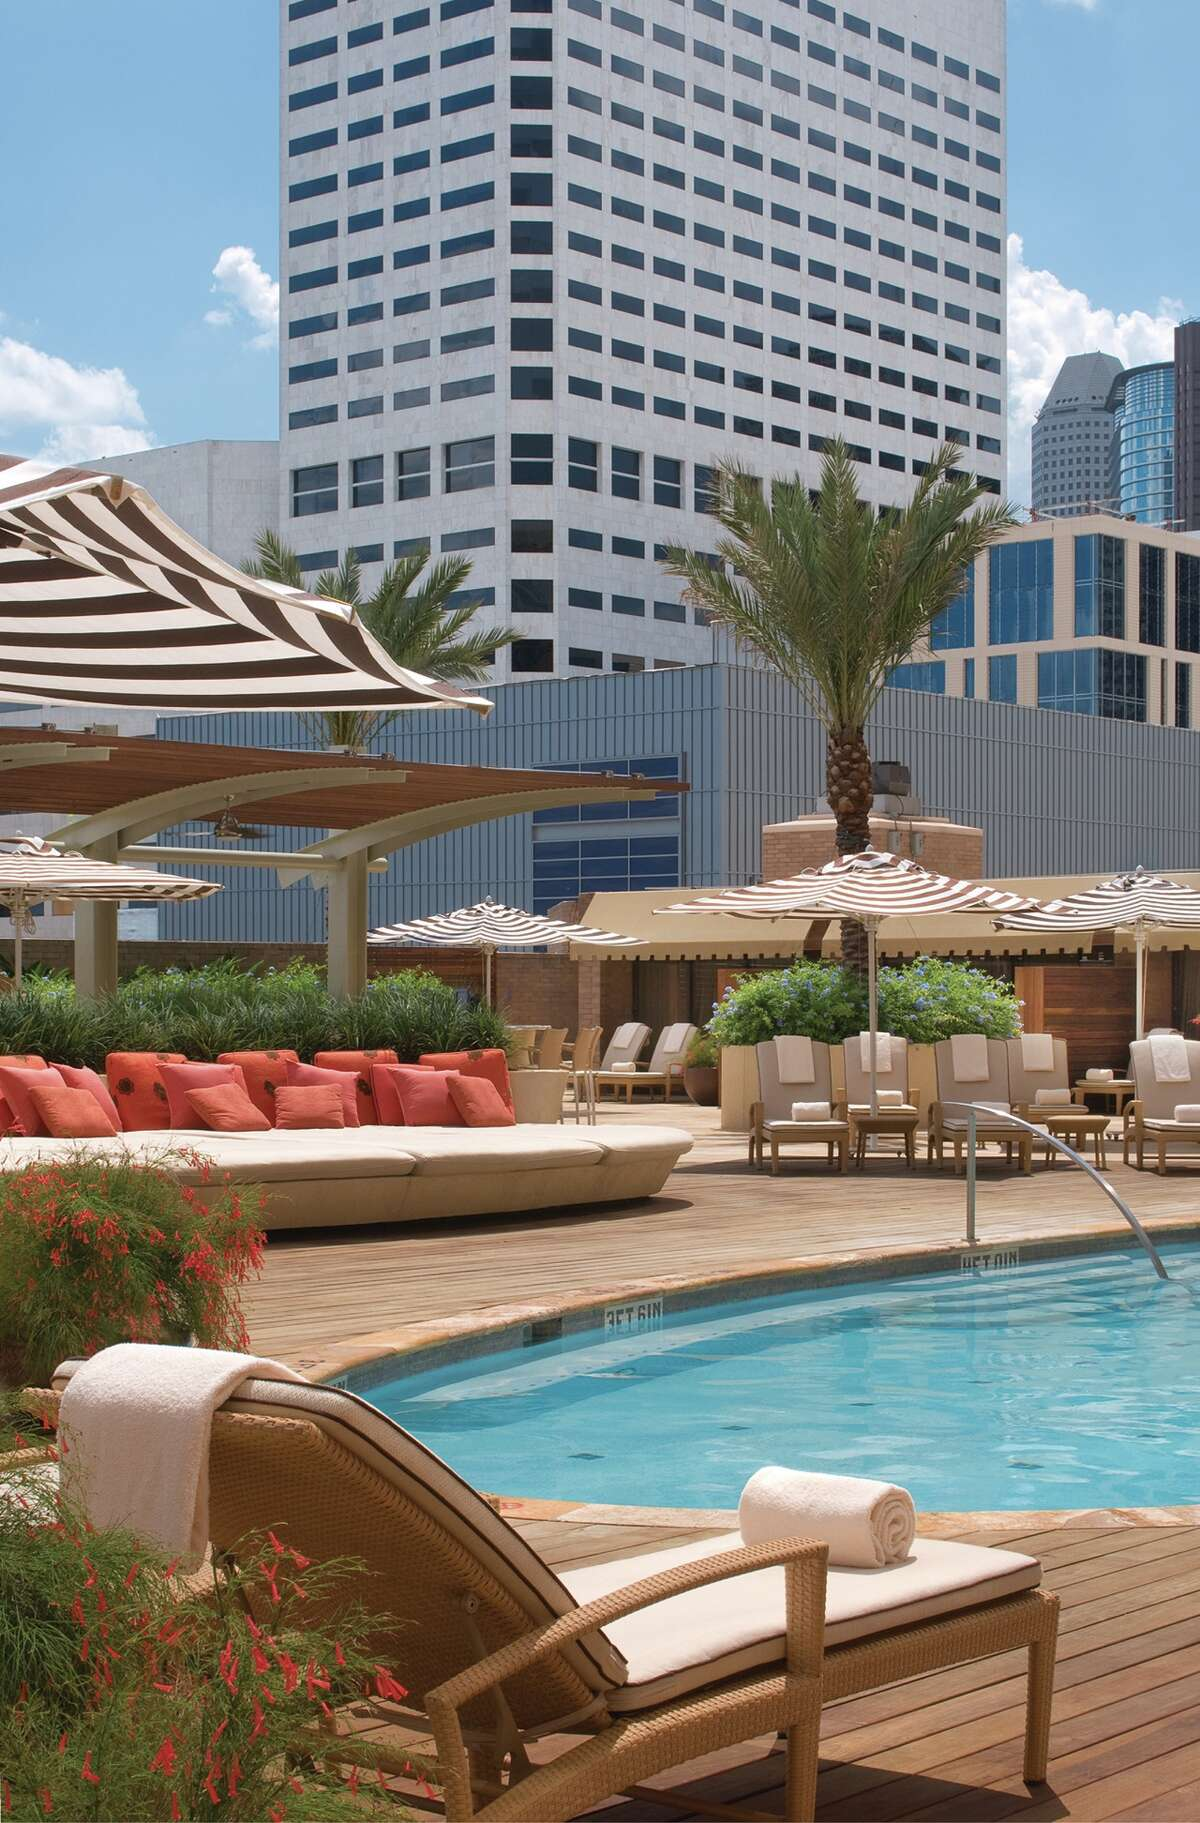 The downtown Four Seasons Hotel has a pool.